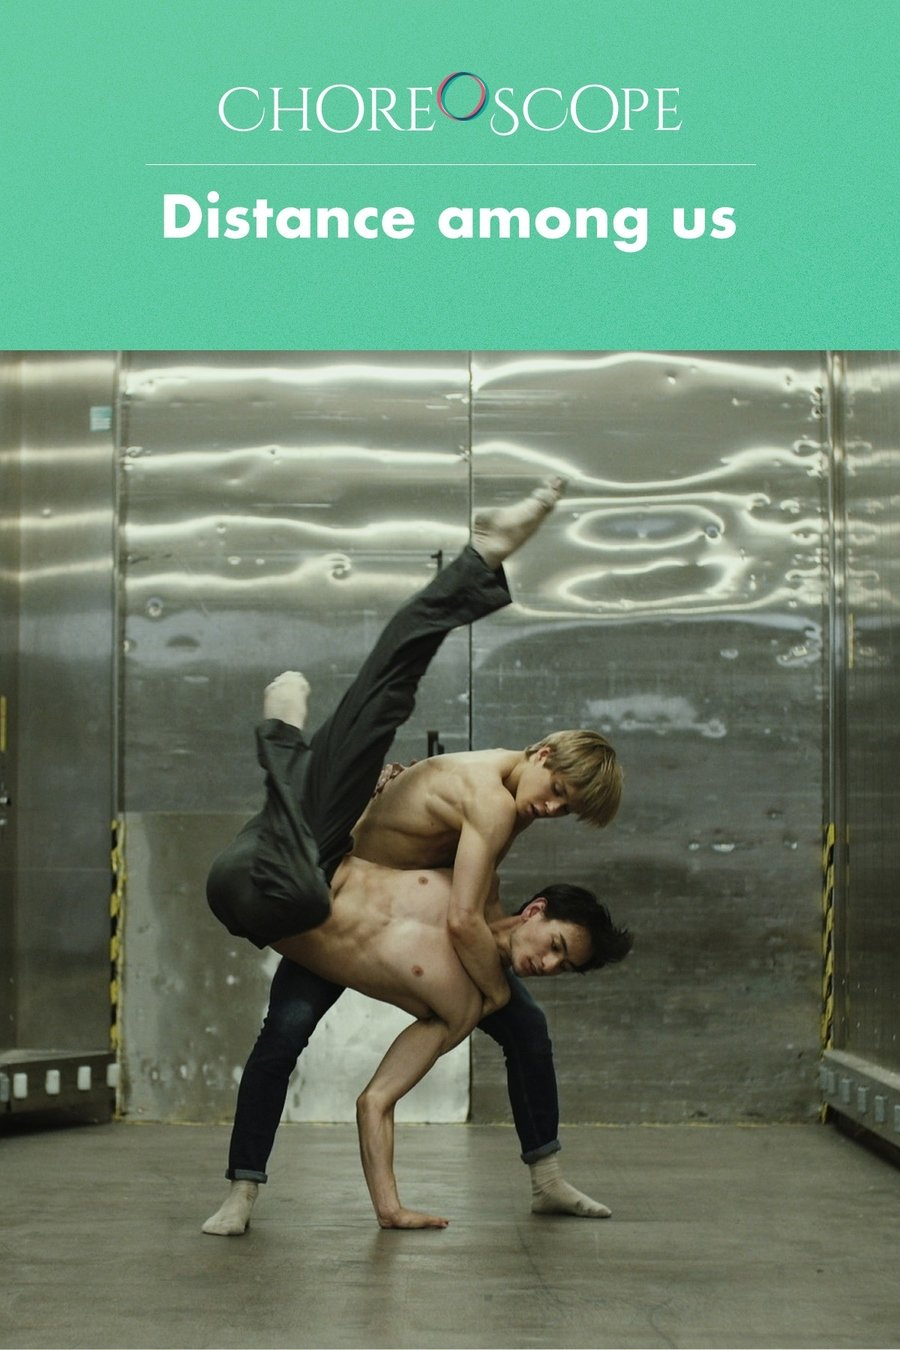 Distance among us